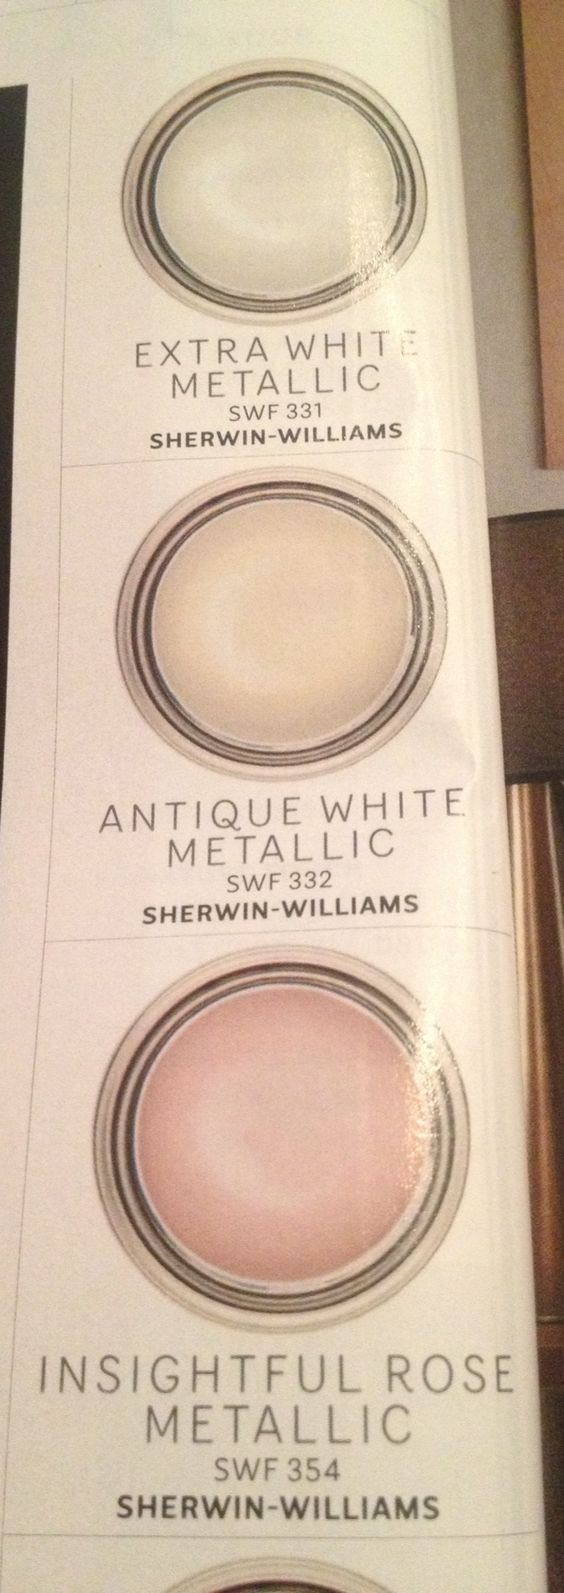 Metallic Paint Colors Sherwin Williams For The Home Pinterest Colors Metallic Paint